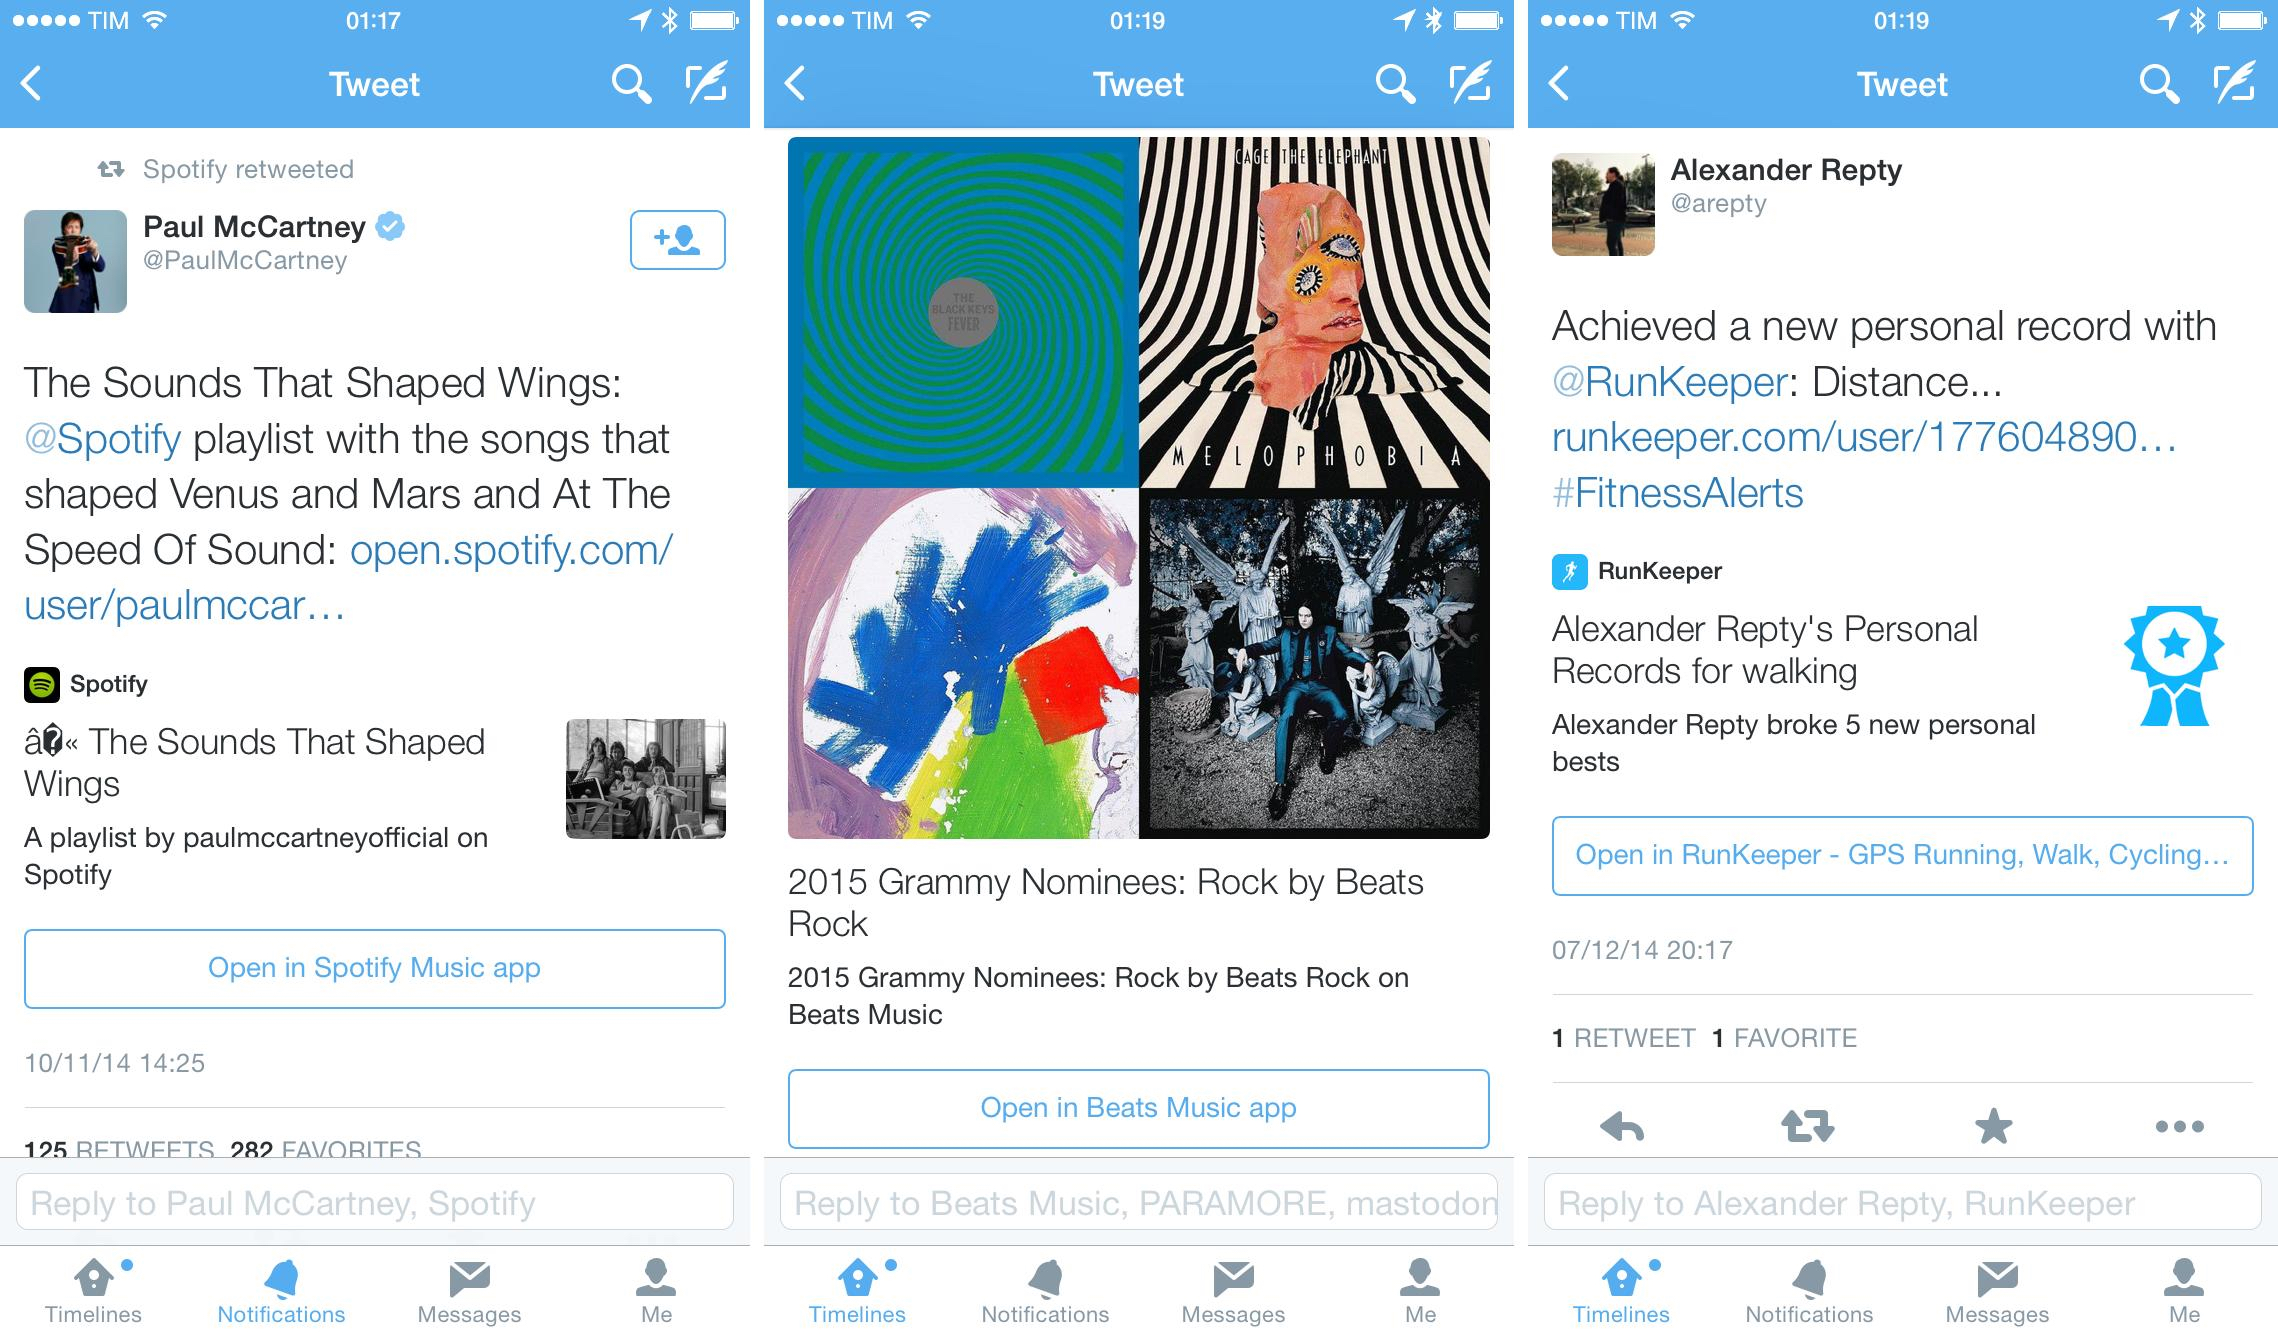 App deep-linking in Twitter. Spotify should look into their Unicode handling.